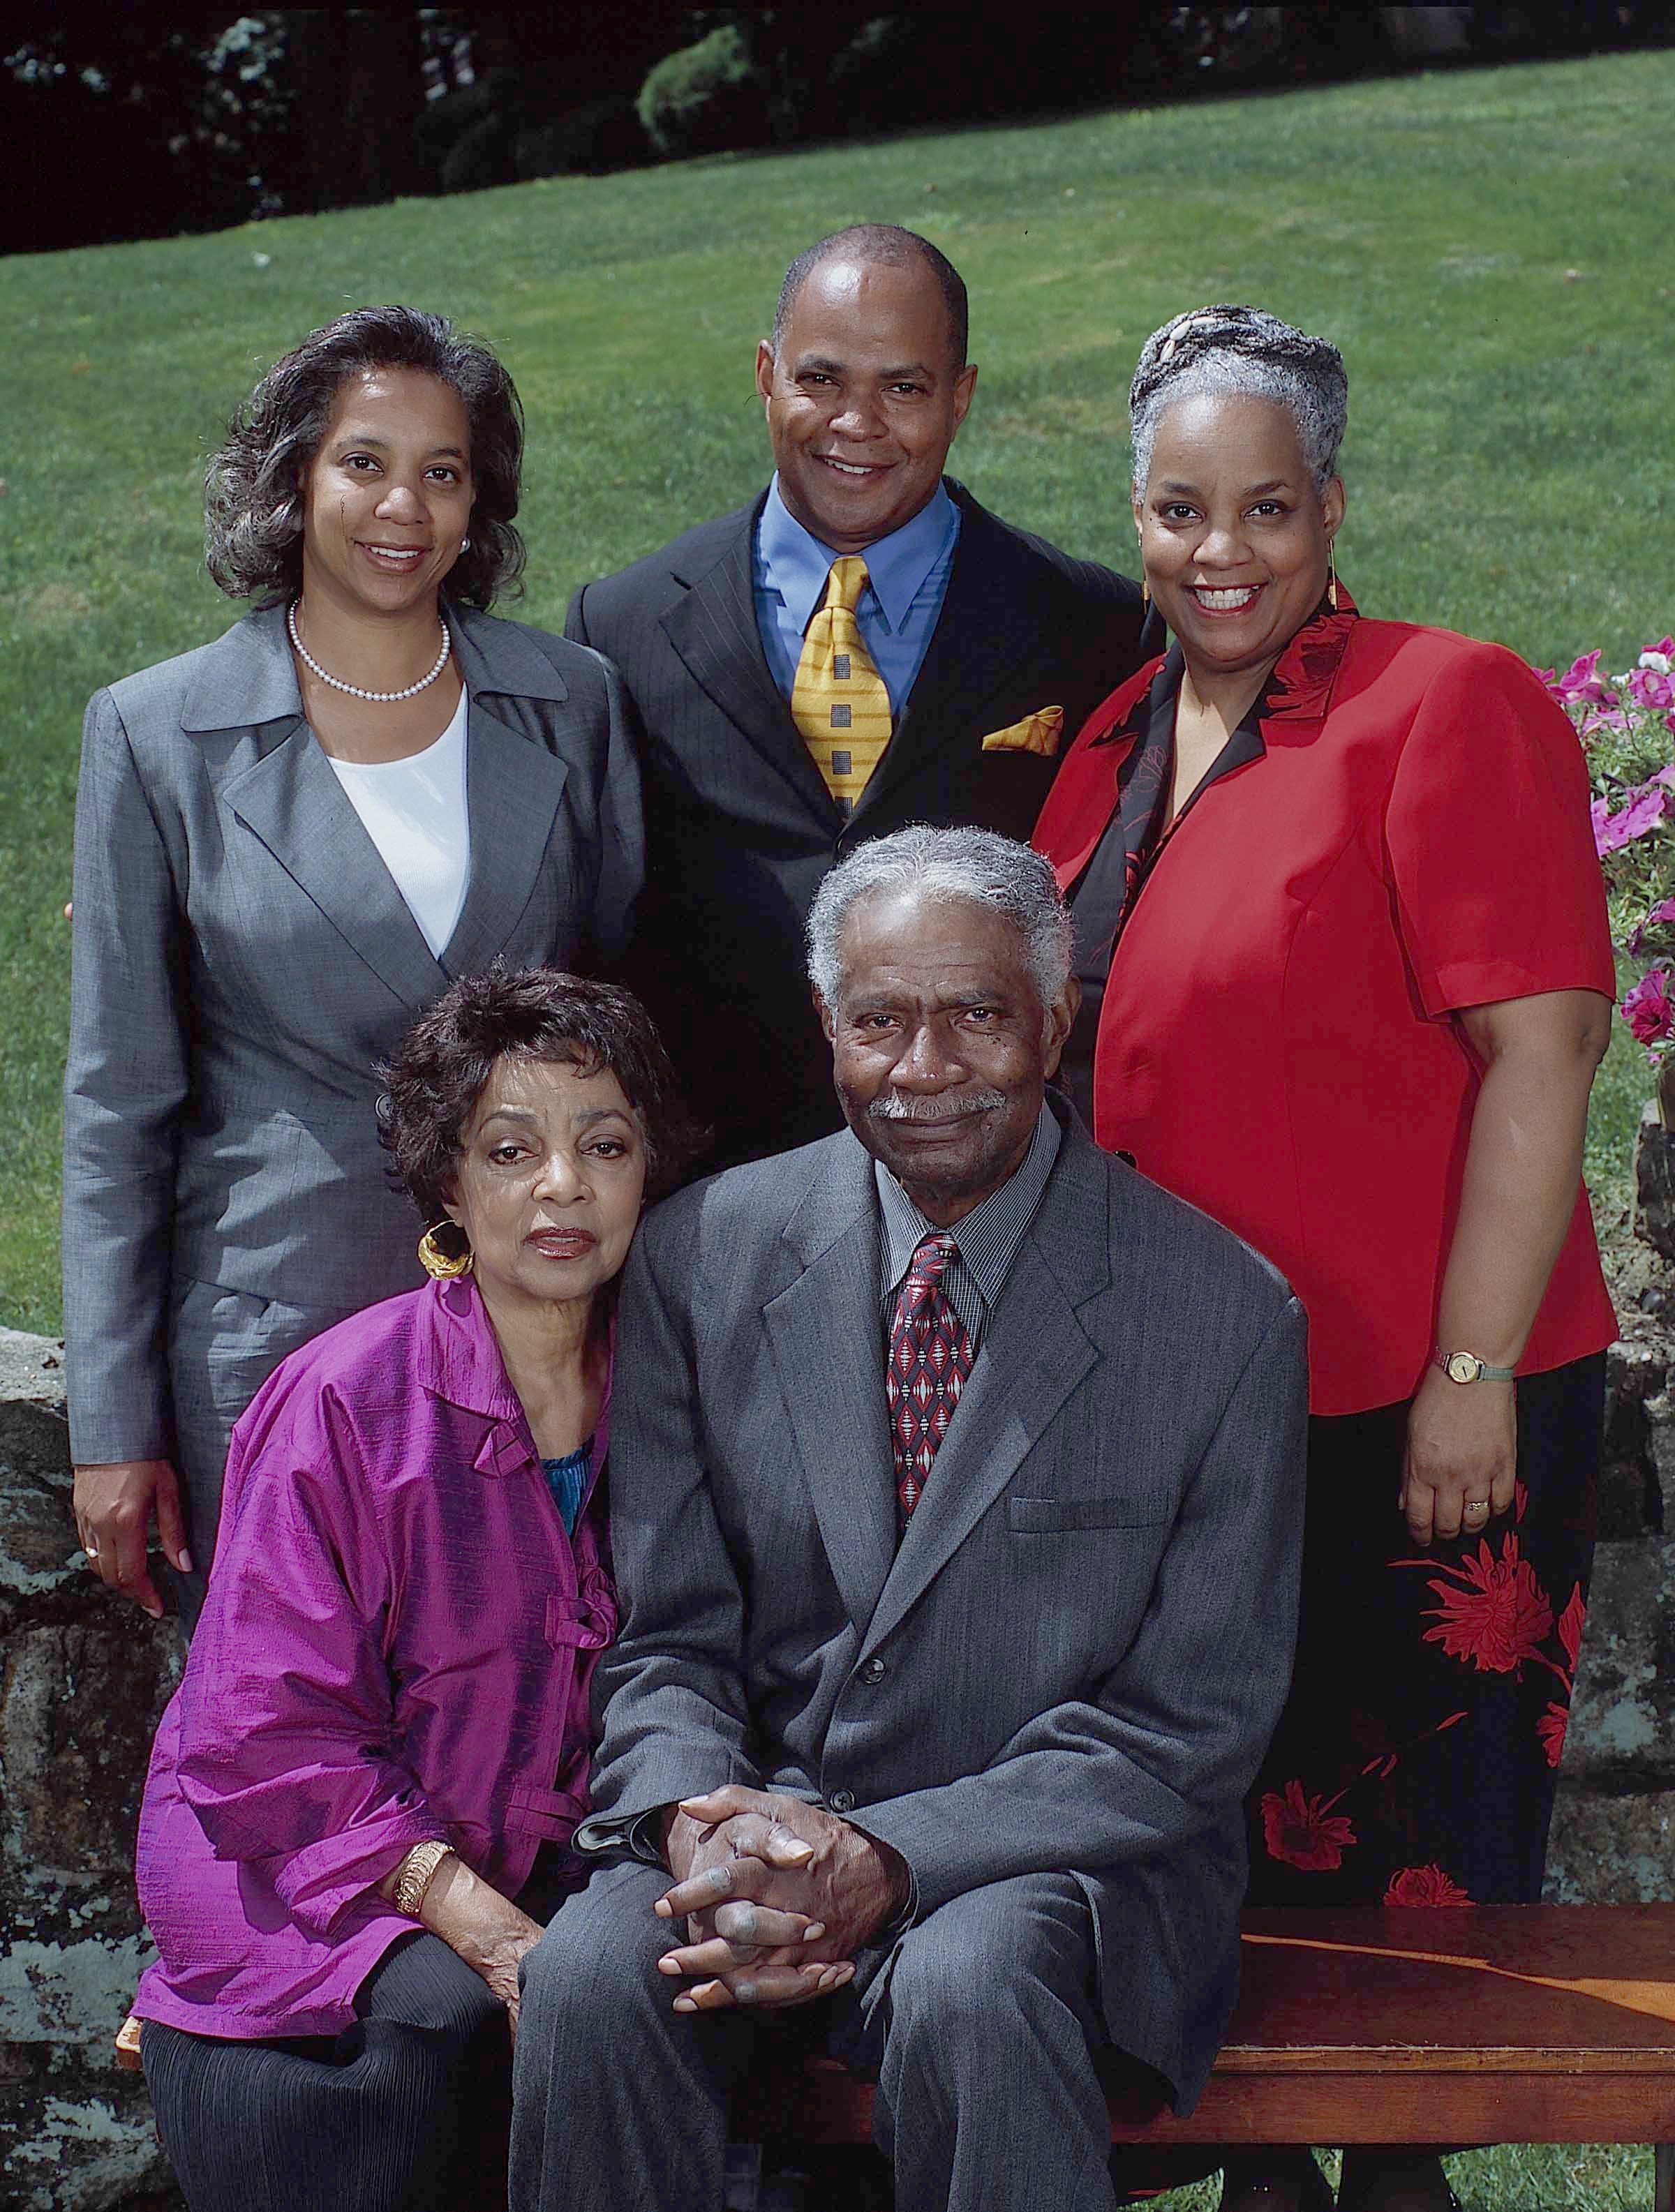 Portrait of married American actors and Civil Rights activists Ruby Dee and Ossie Davis as they pose outdoors with their children, late 1990s or early 2000s.  | Photo: Getty Images